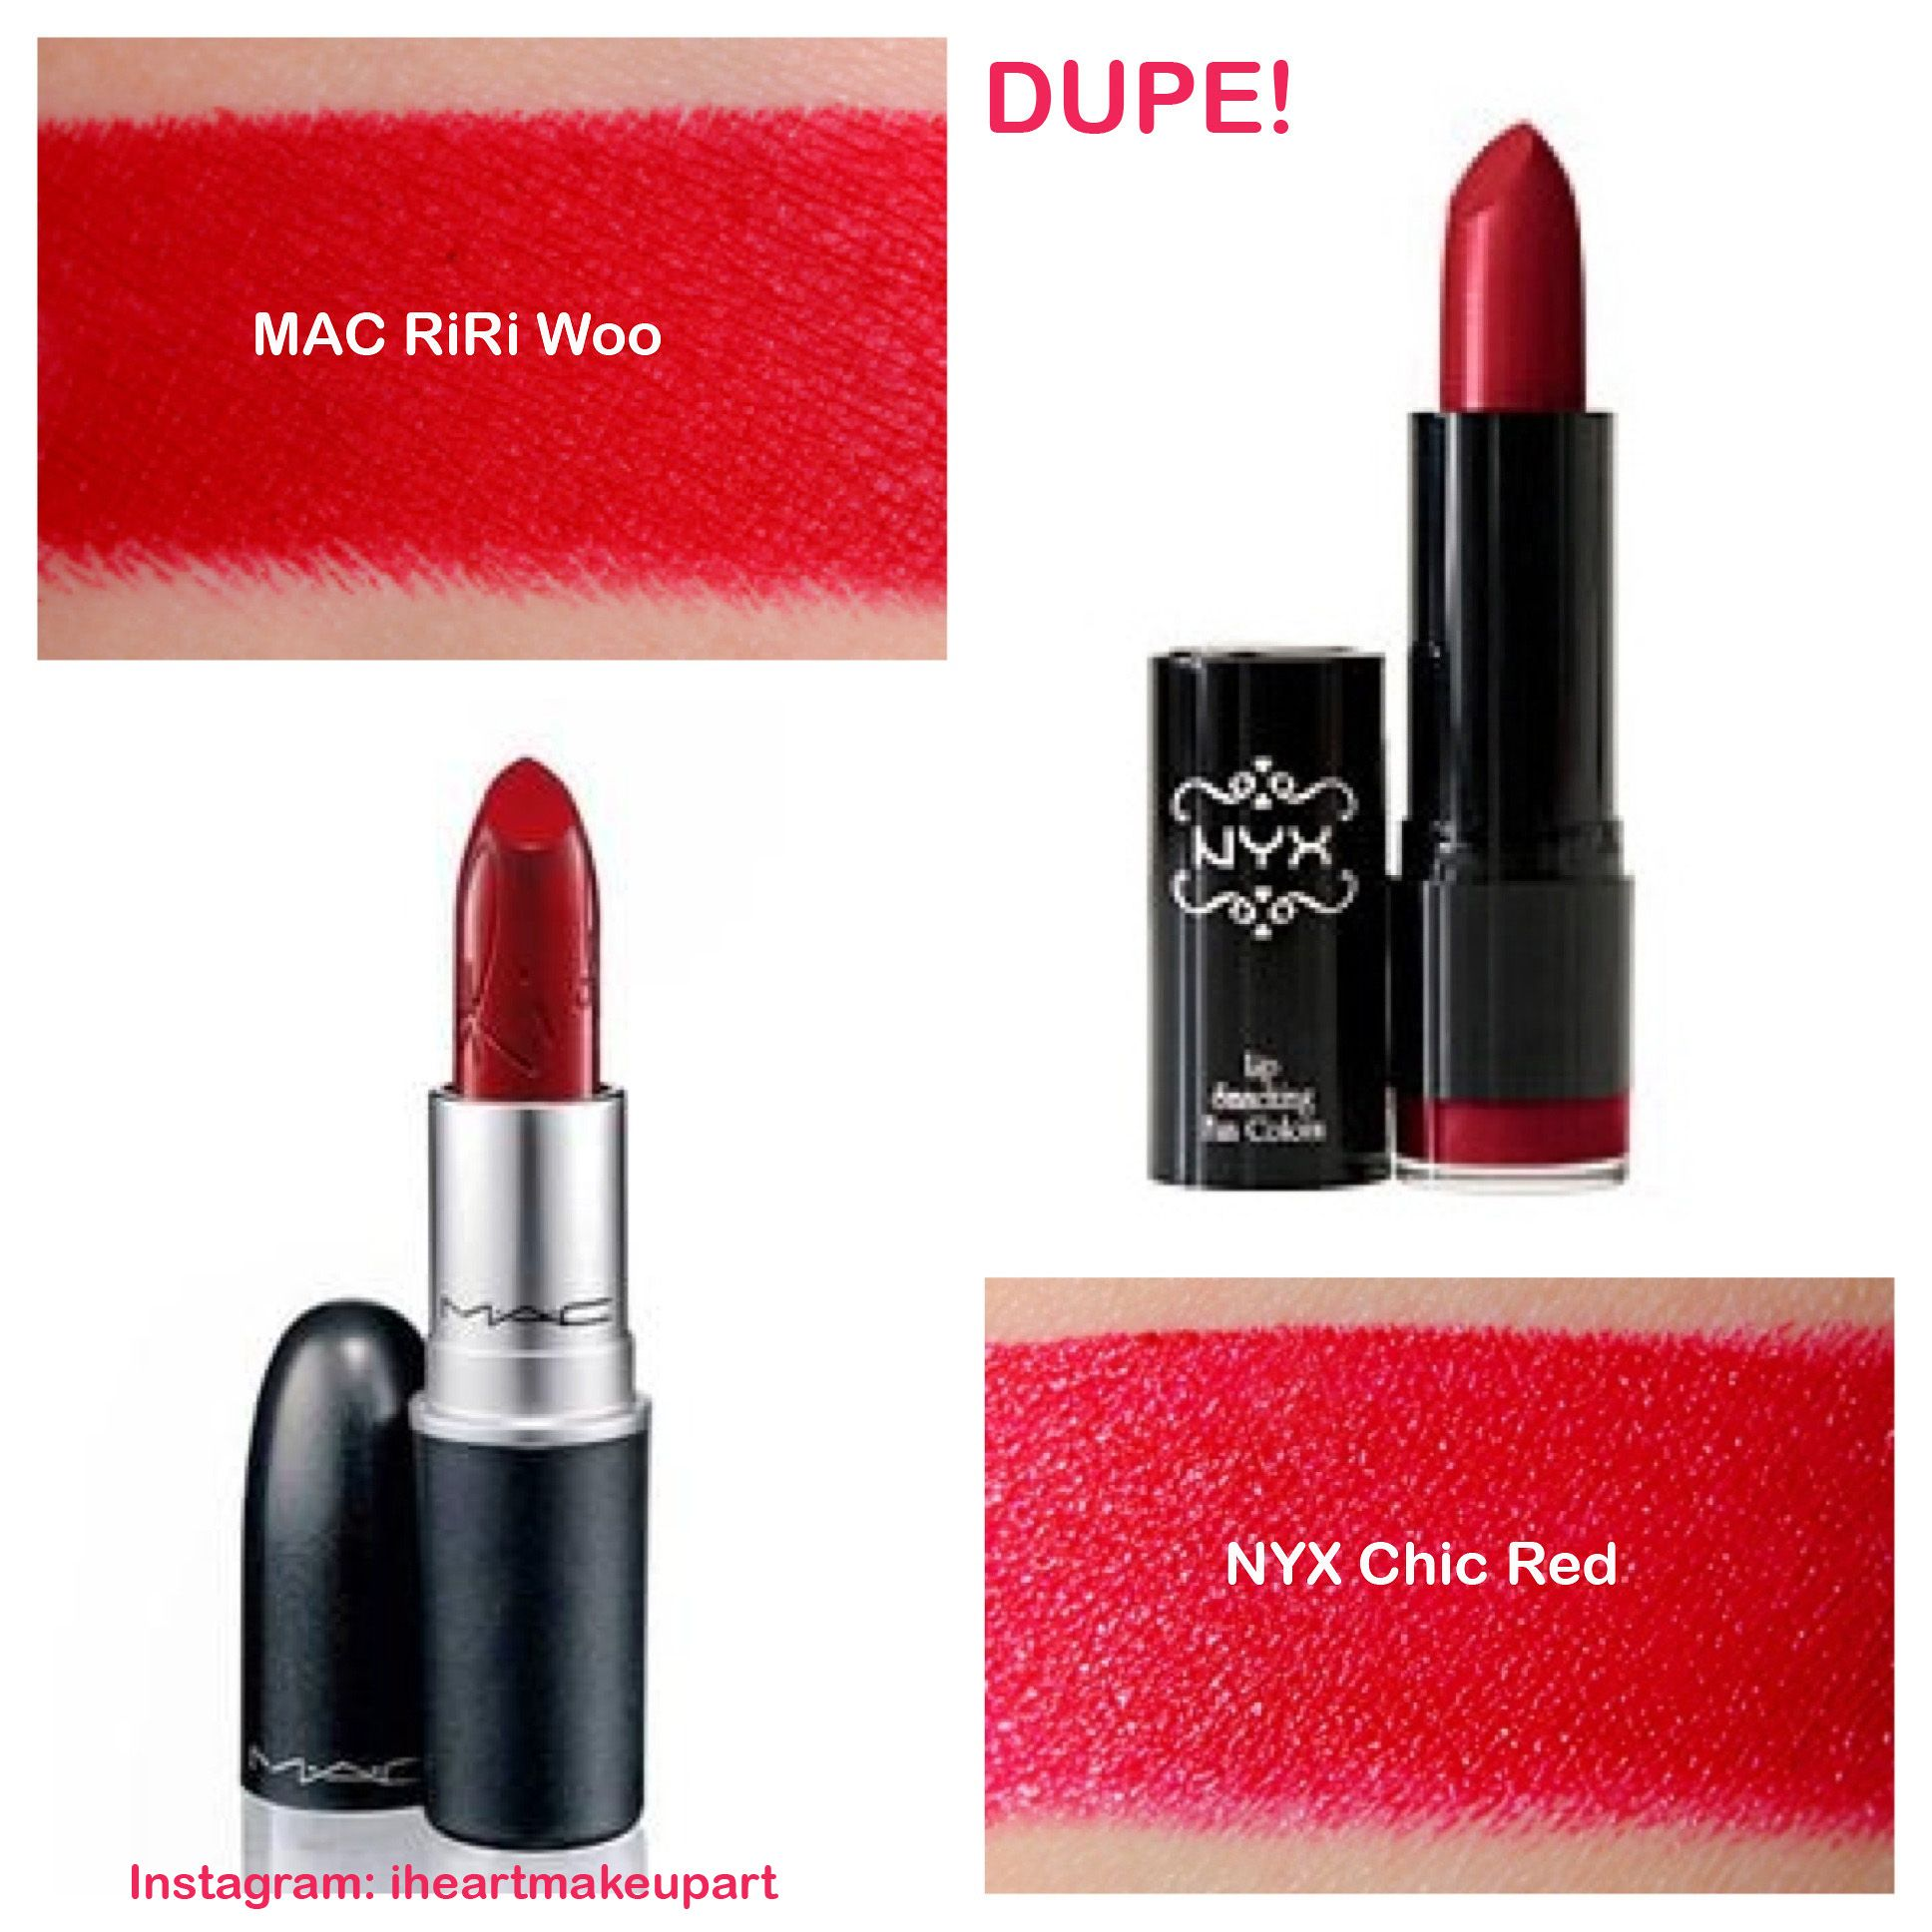 MAC RiRi Woo dupe! Just bought this NYX lipstick. It's GORGEOUS ...